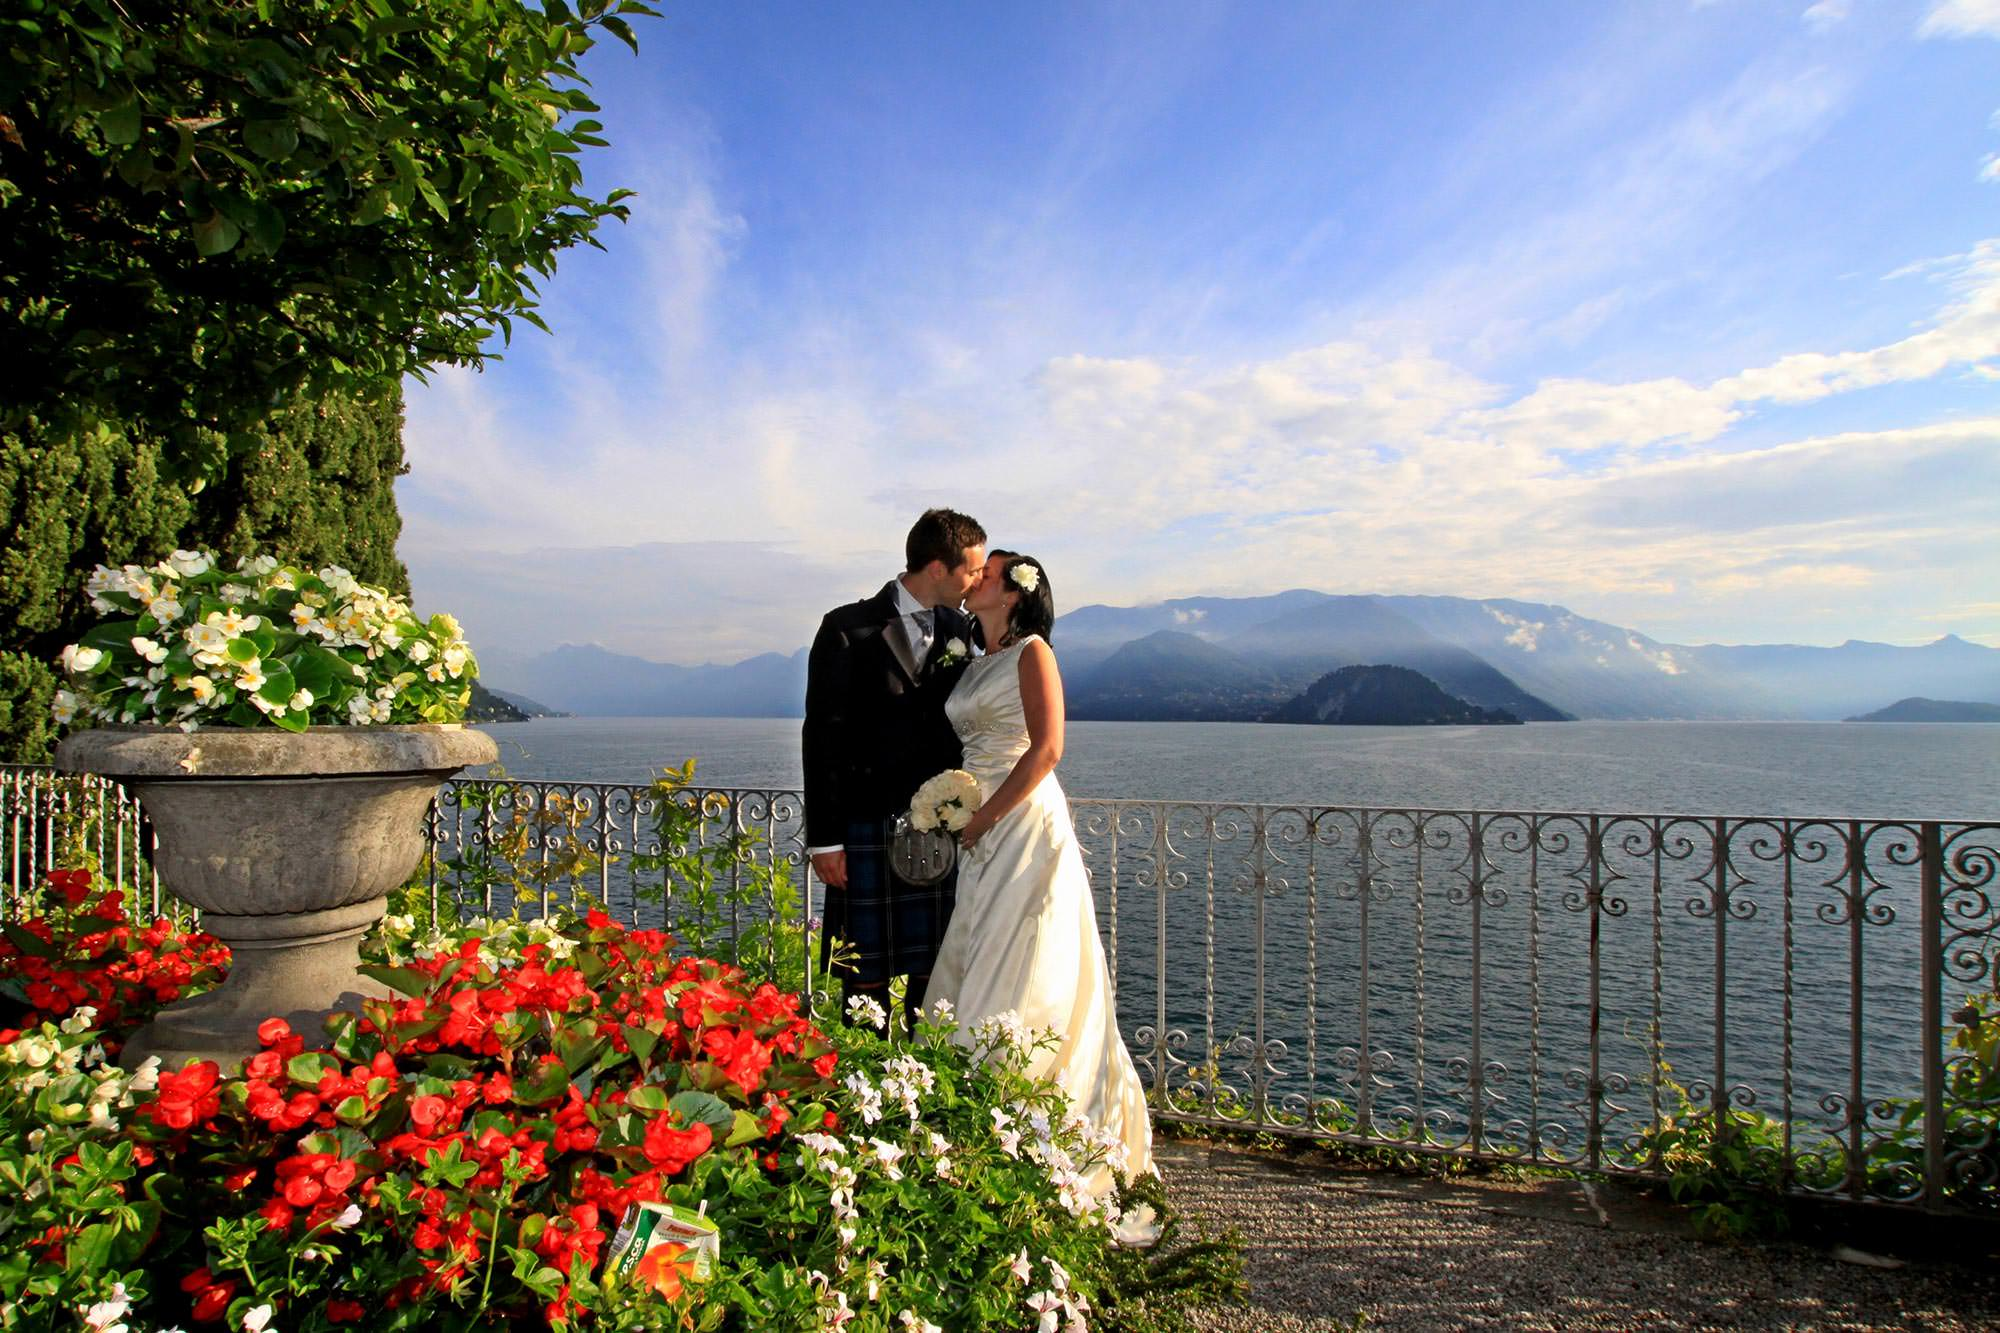 Villa Cipressi wedding planner